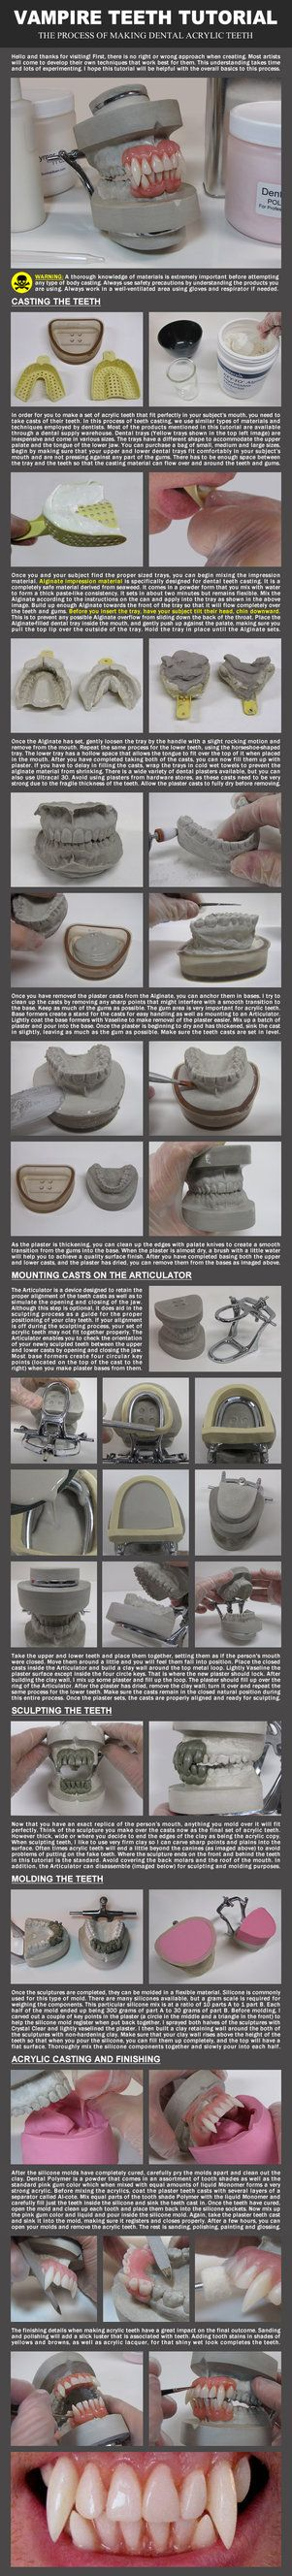 Vampire teeth tutorial by evancampbell on deviantart cool and